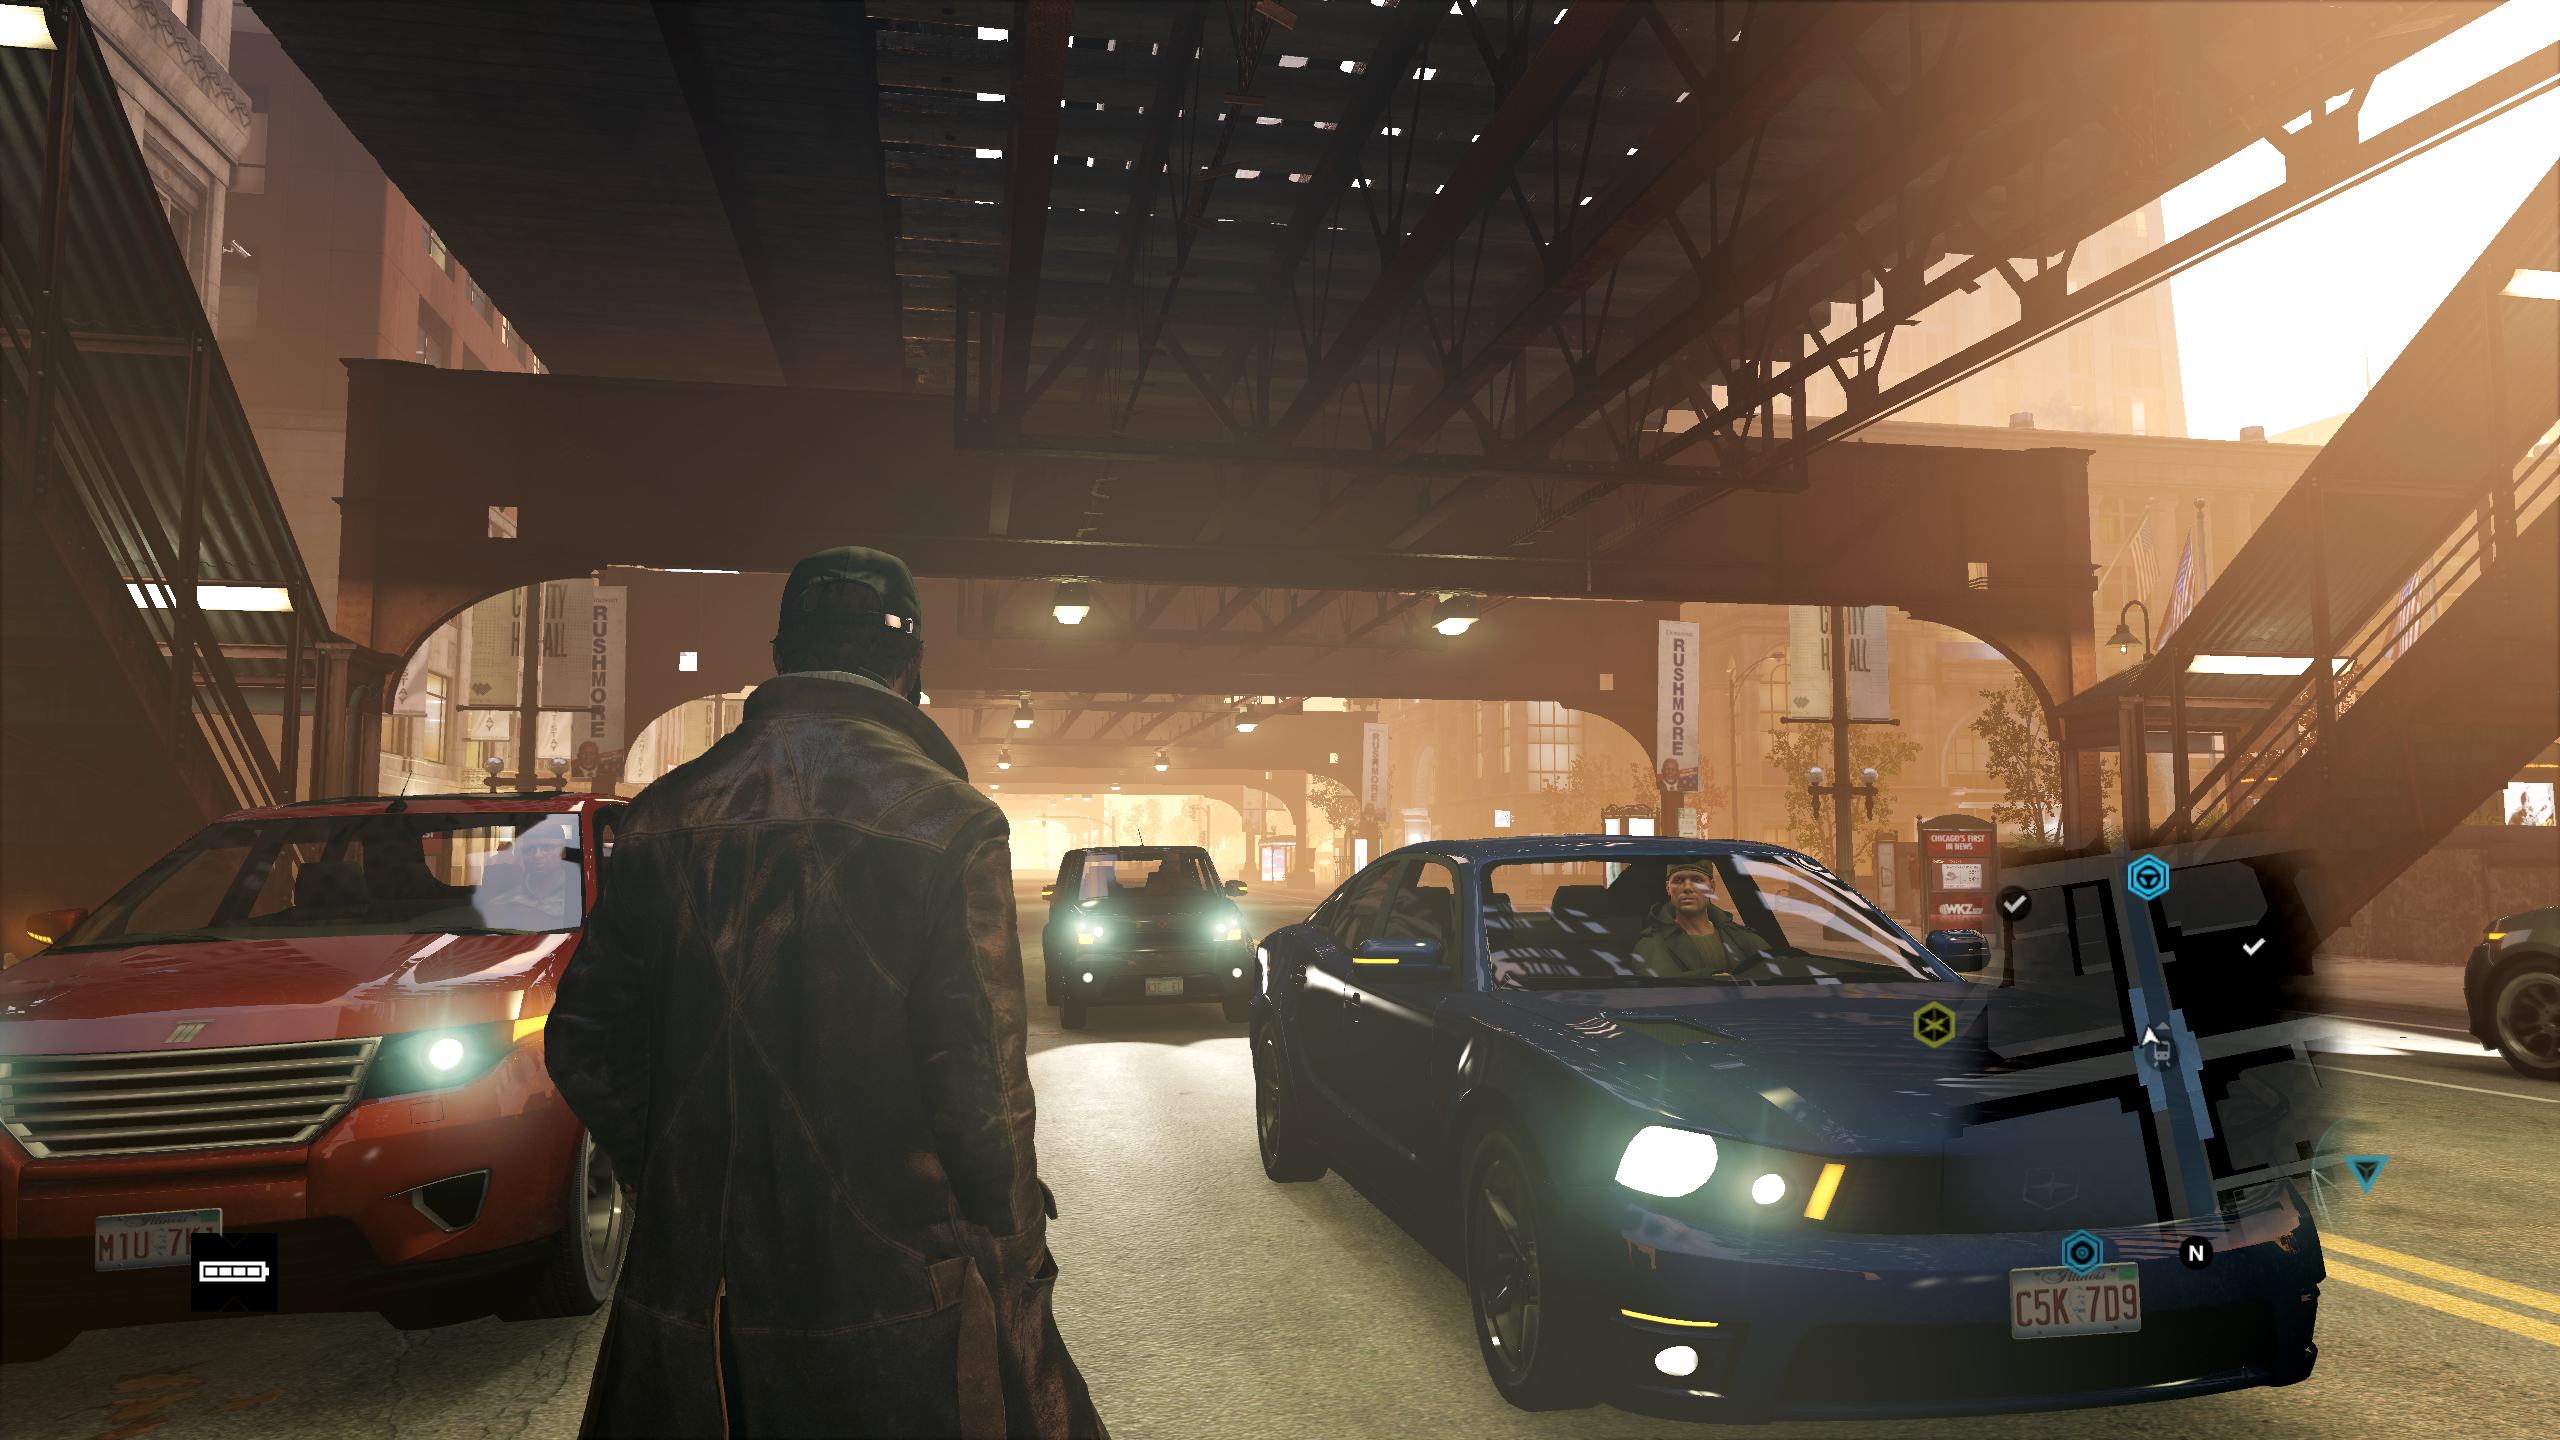 Watch_Dogs_2014_06_22_18_40_28_087.png